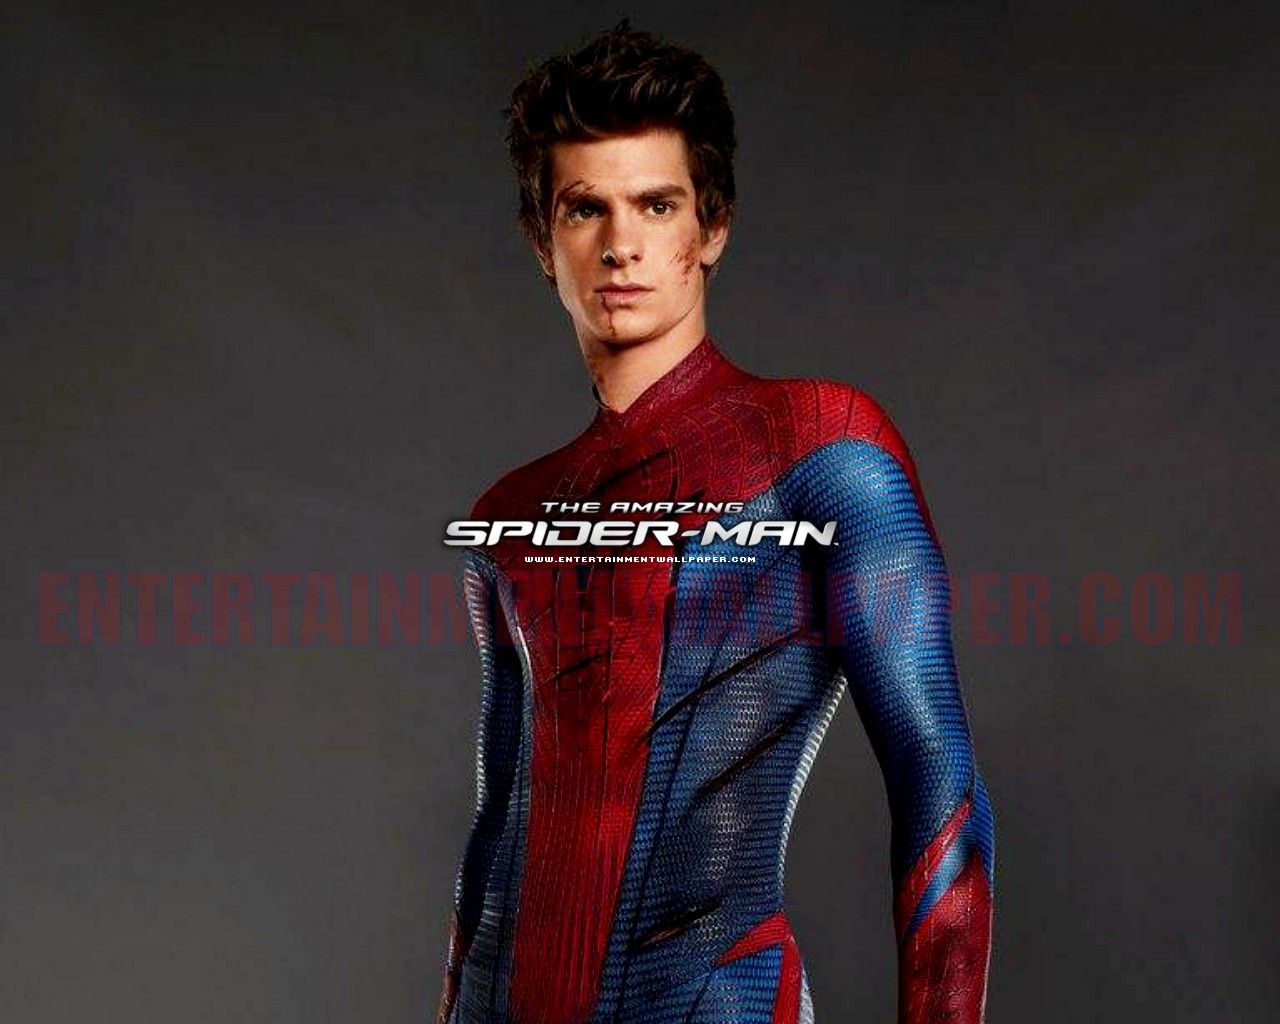 The Amazing Spider-Man 2 Free Download - http://www.ekeo.co/the-amazing-spider-man-2-free-download